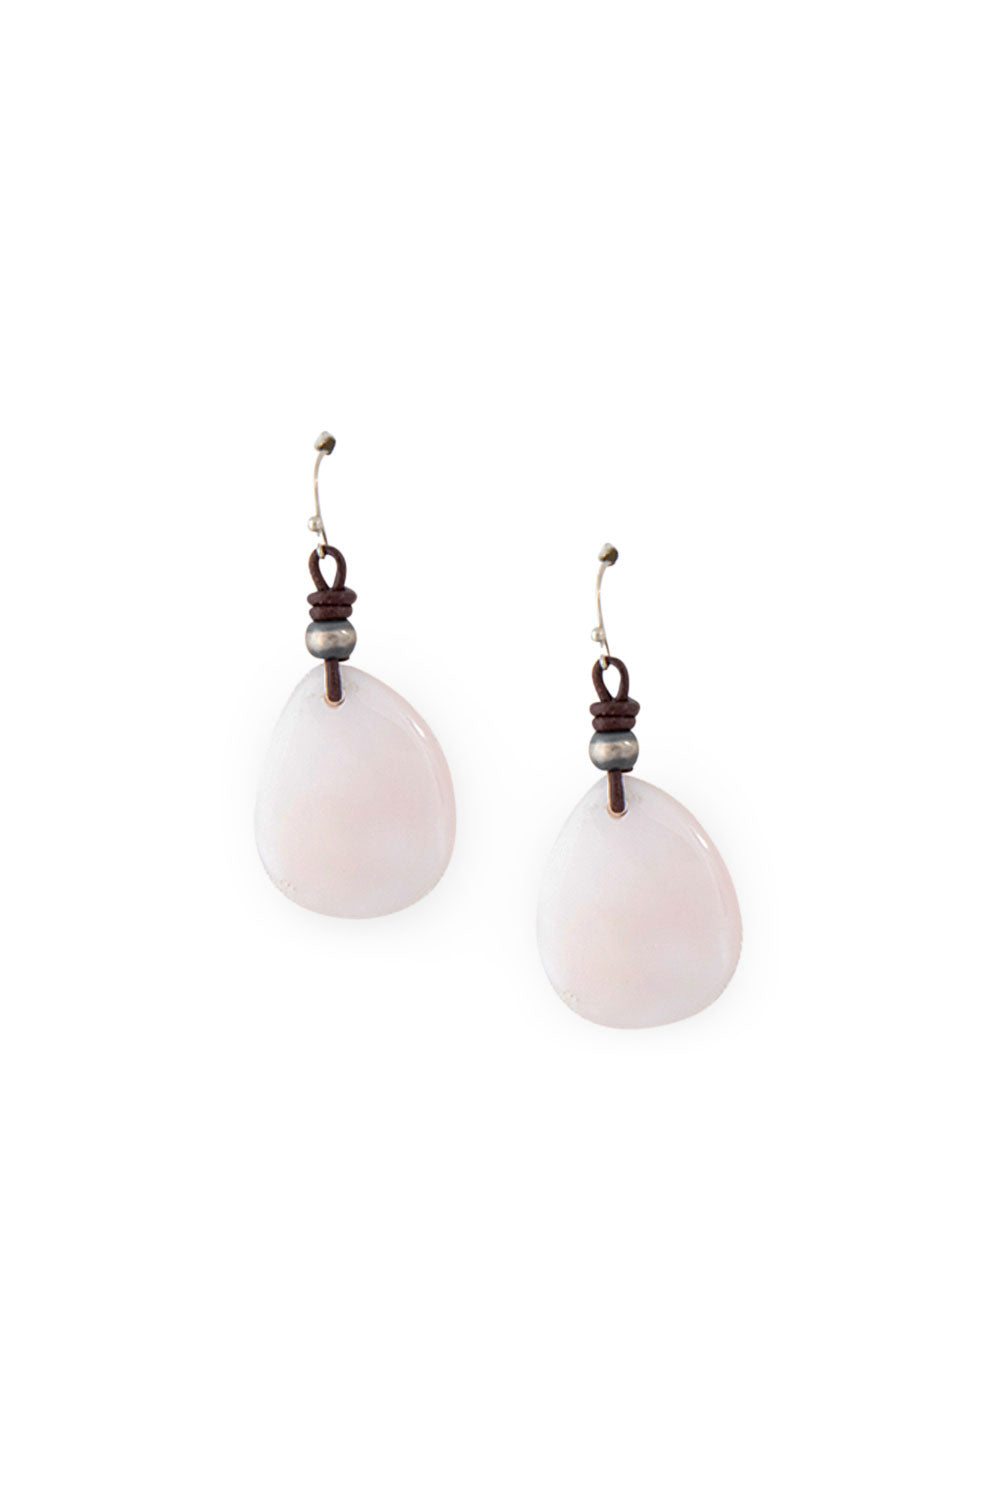 Earrings, Slab, Mother of Pearl, 437